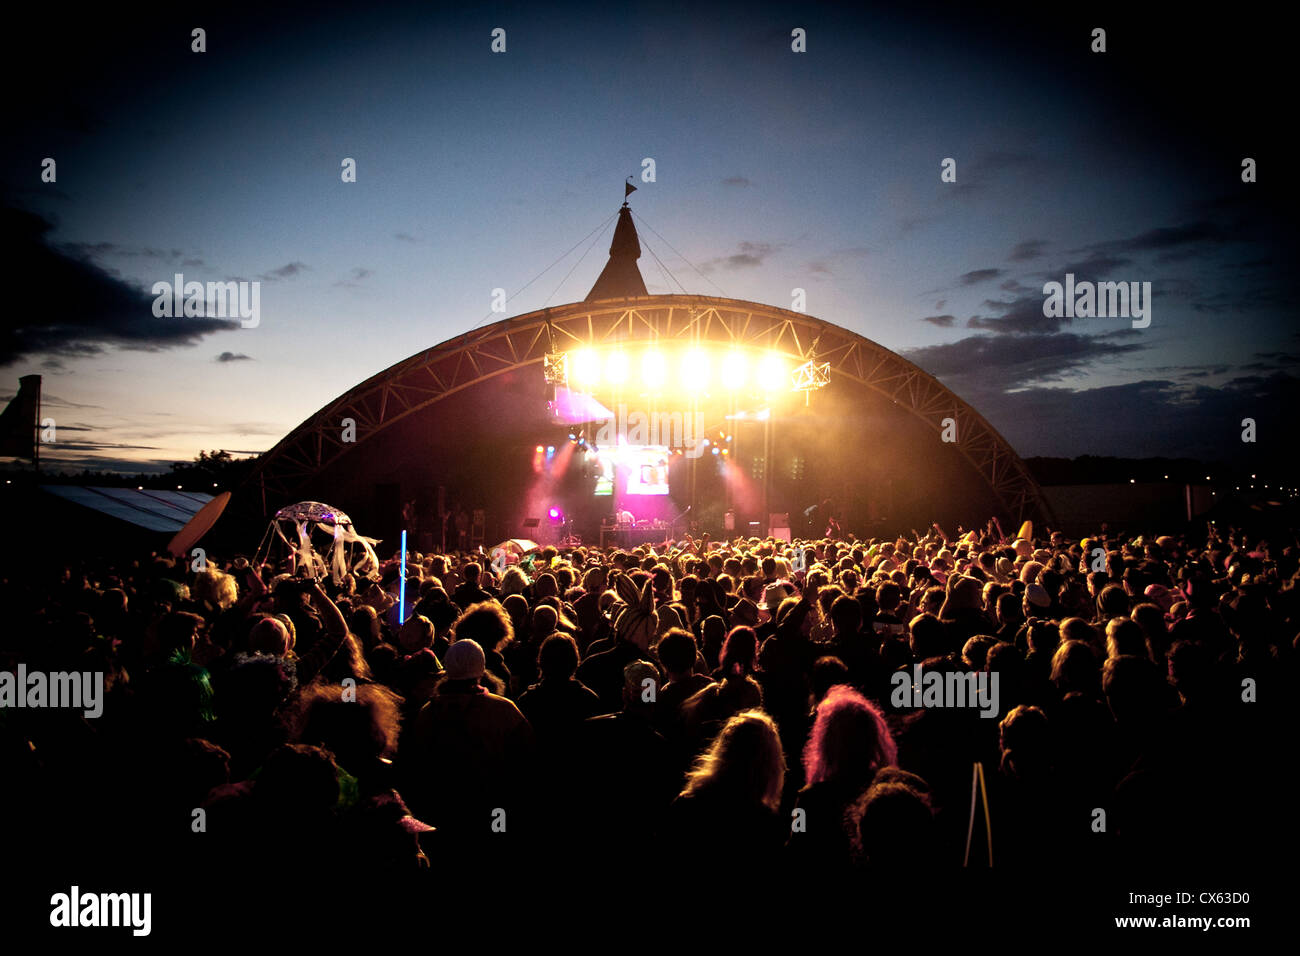 Stage at a Summer Music Festival - Stock Image